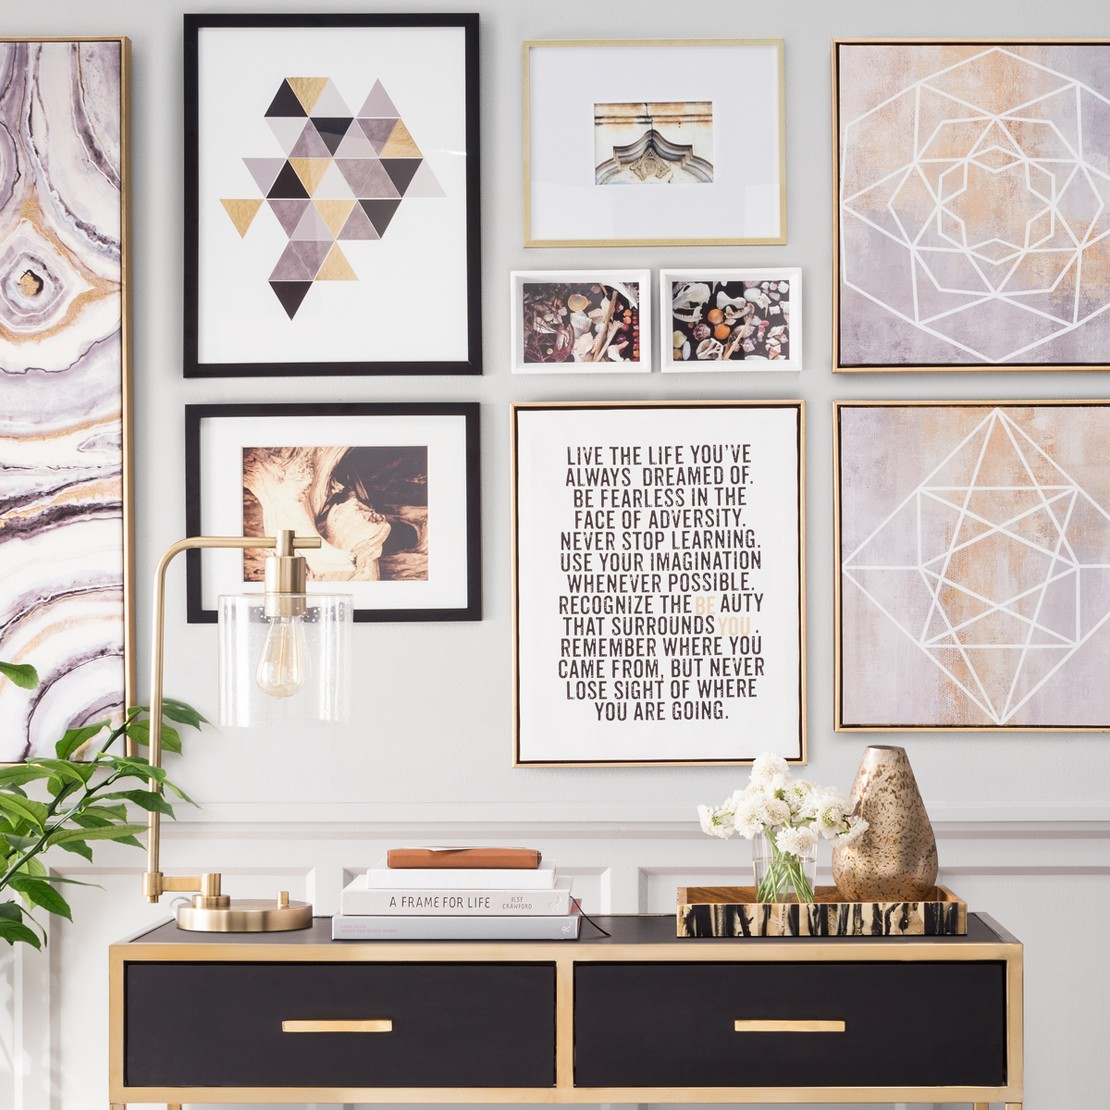 Gallery Wall Photos gallery wall ideas : target